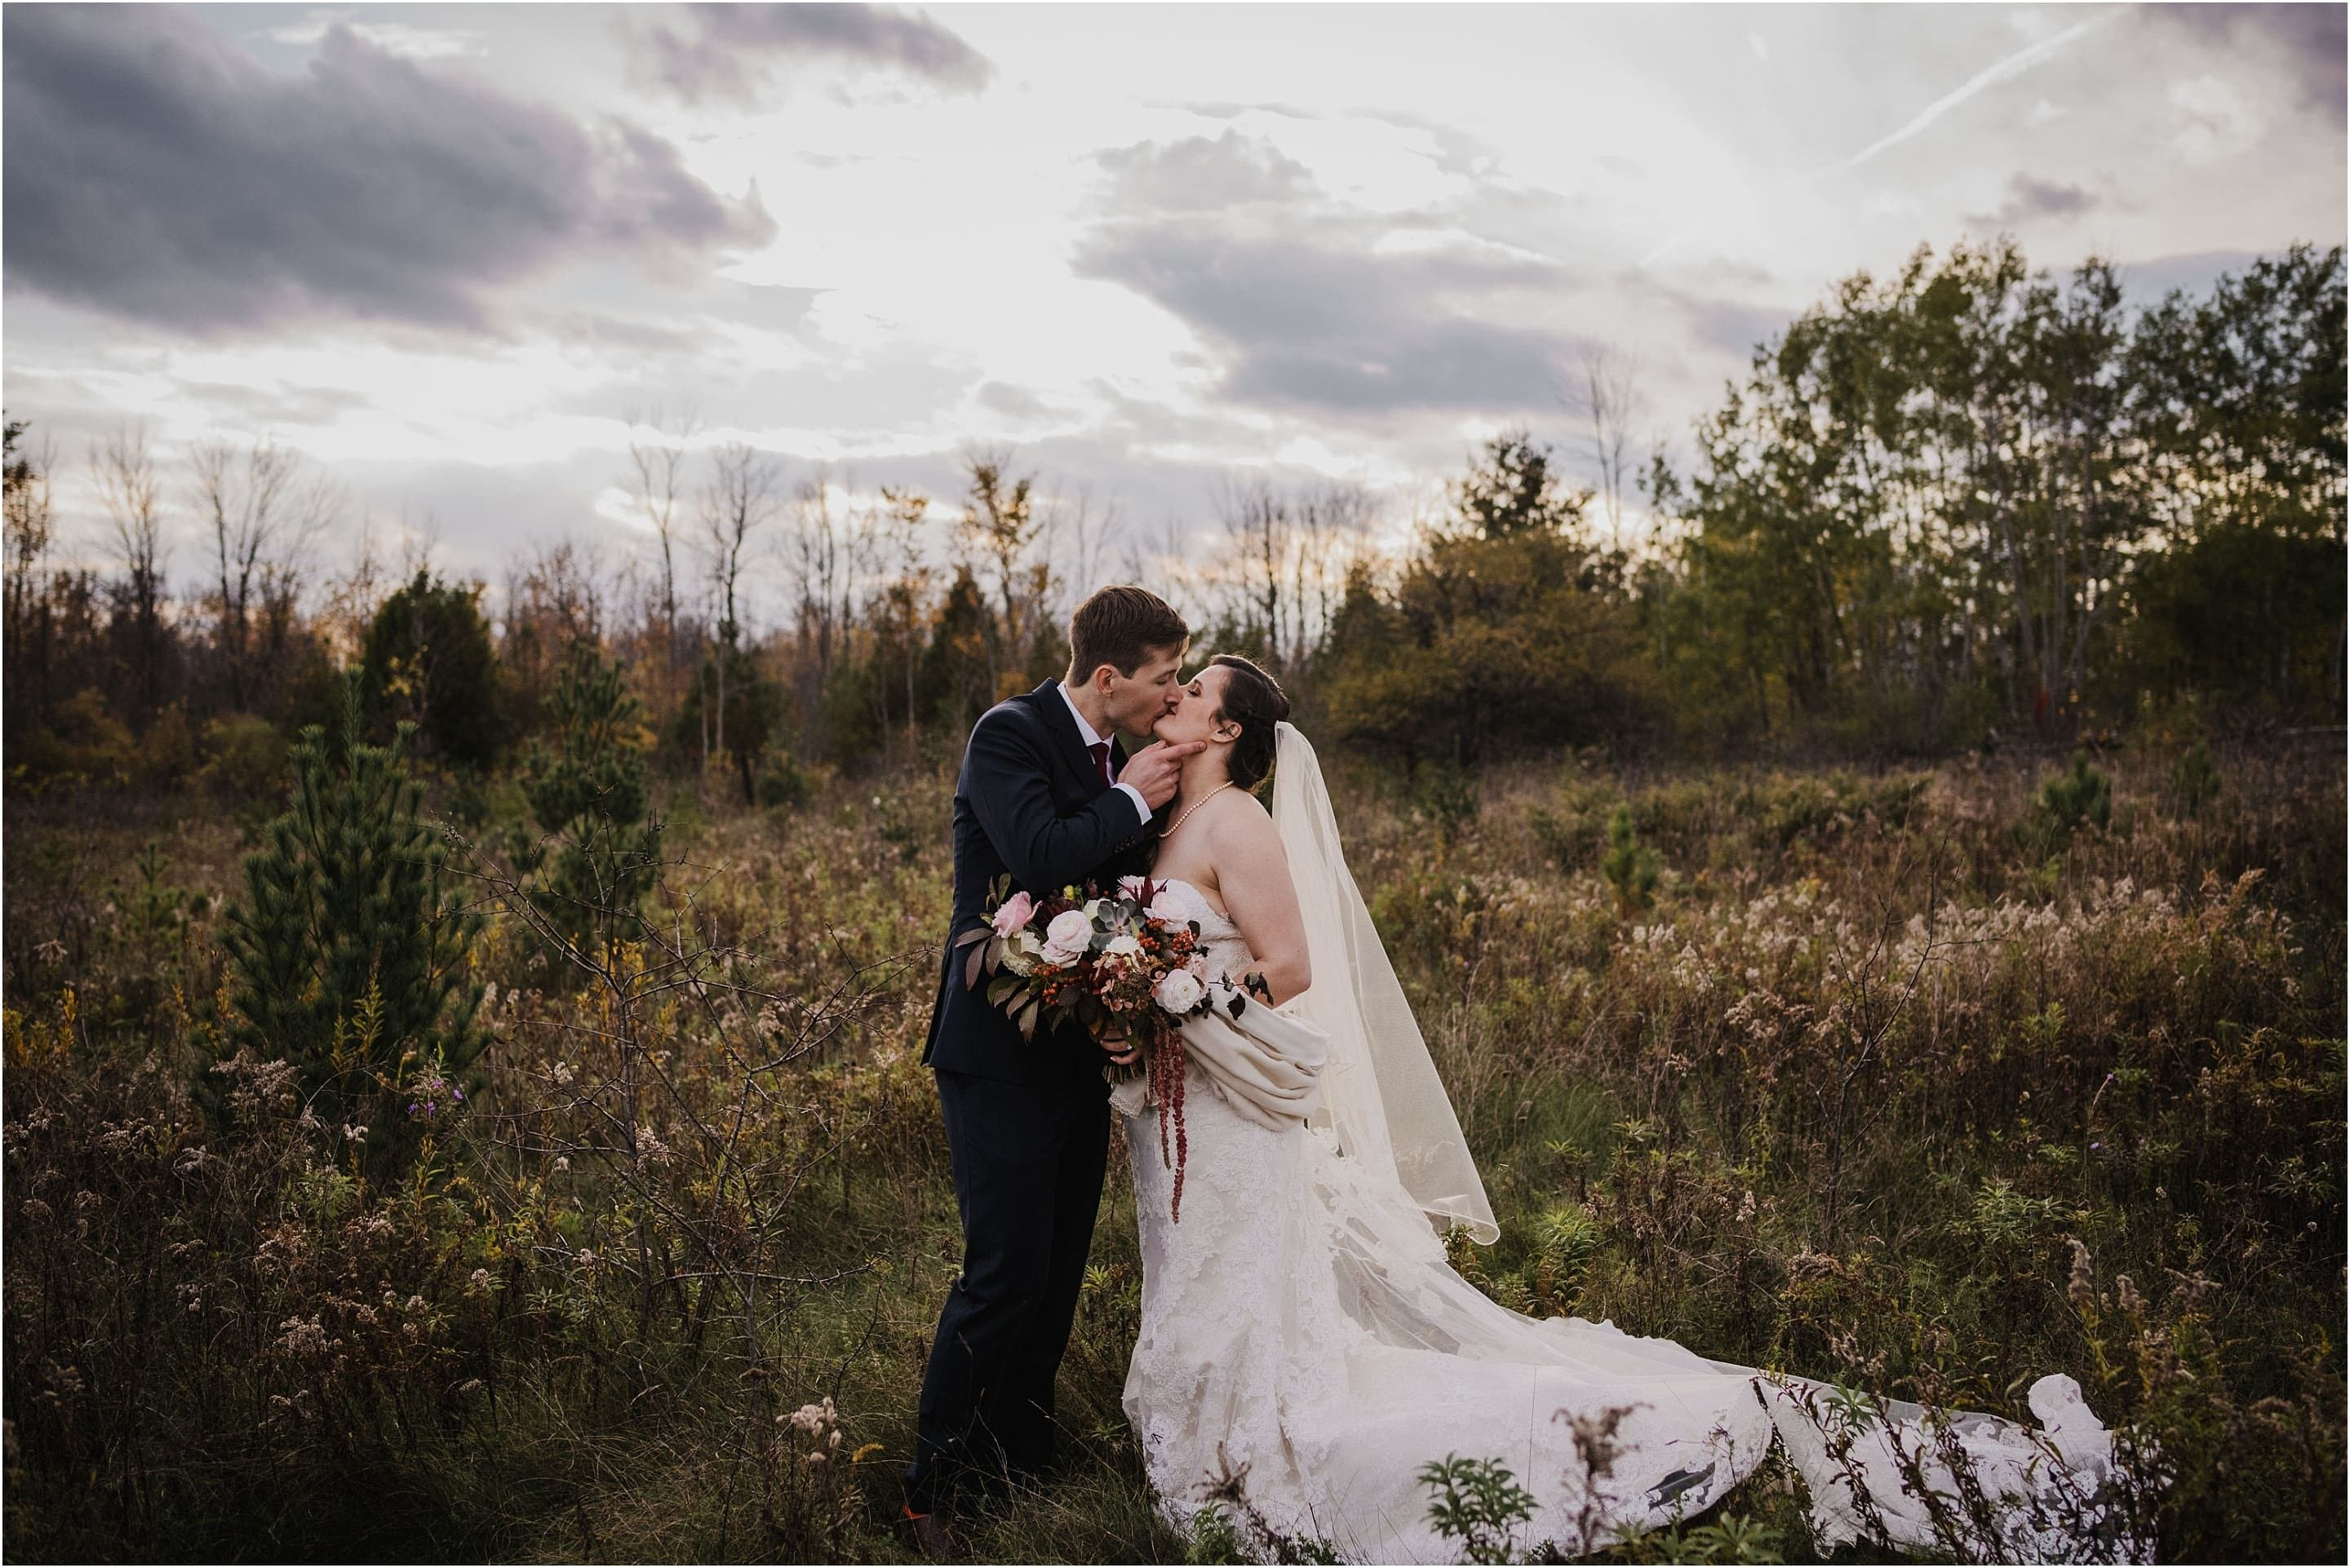 A romantic portrait of a bride and groom kissing at sunset in a field of wildflowers at Stonefields.